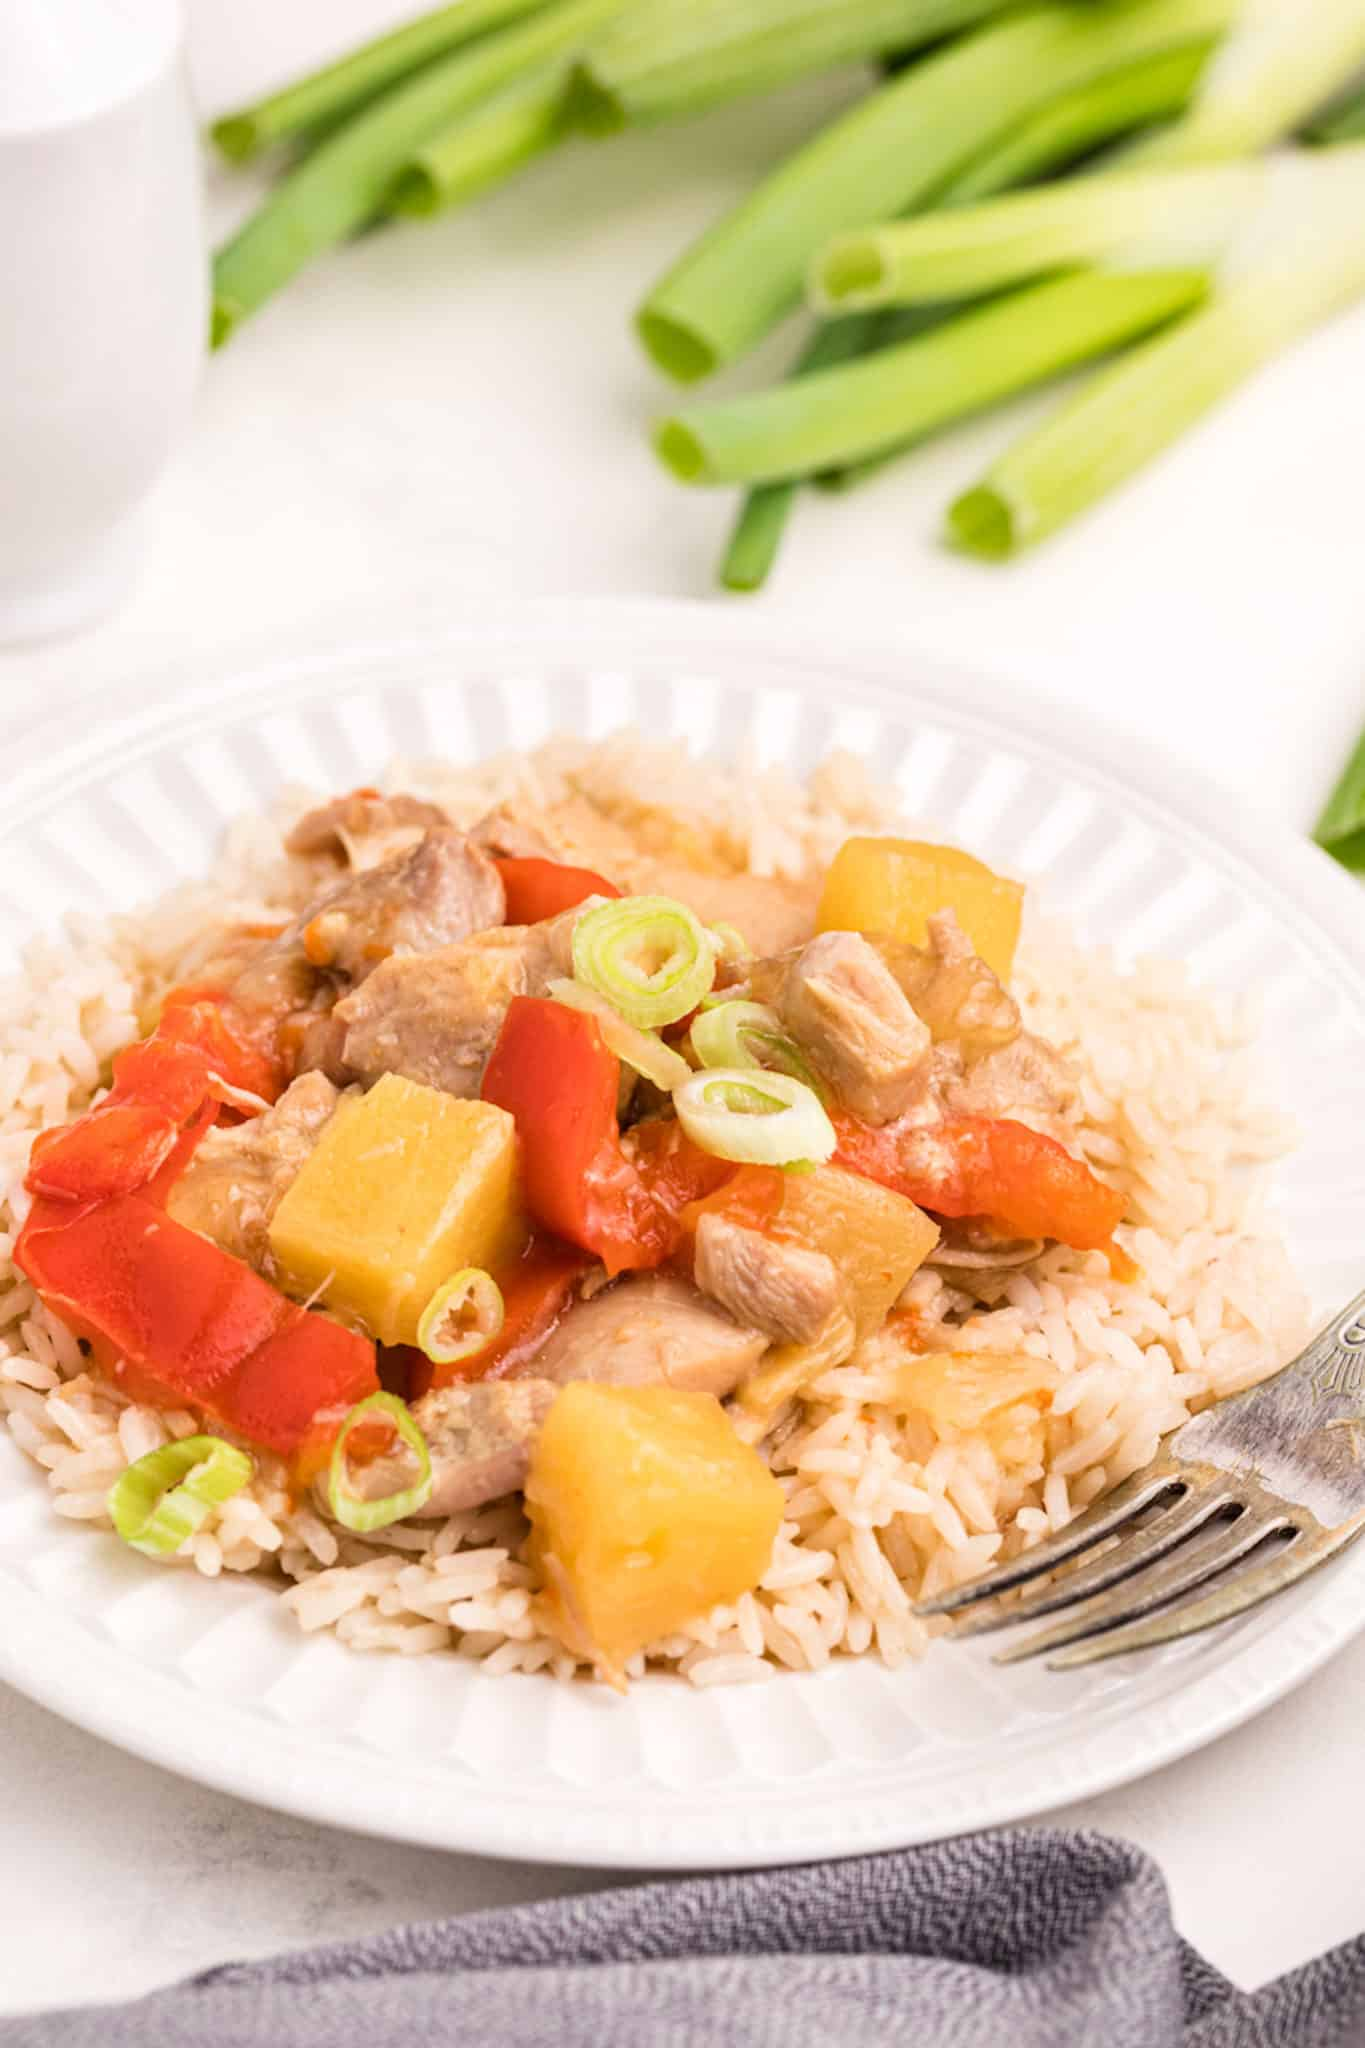 cooked chicken, pineapple, and rice on a plate